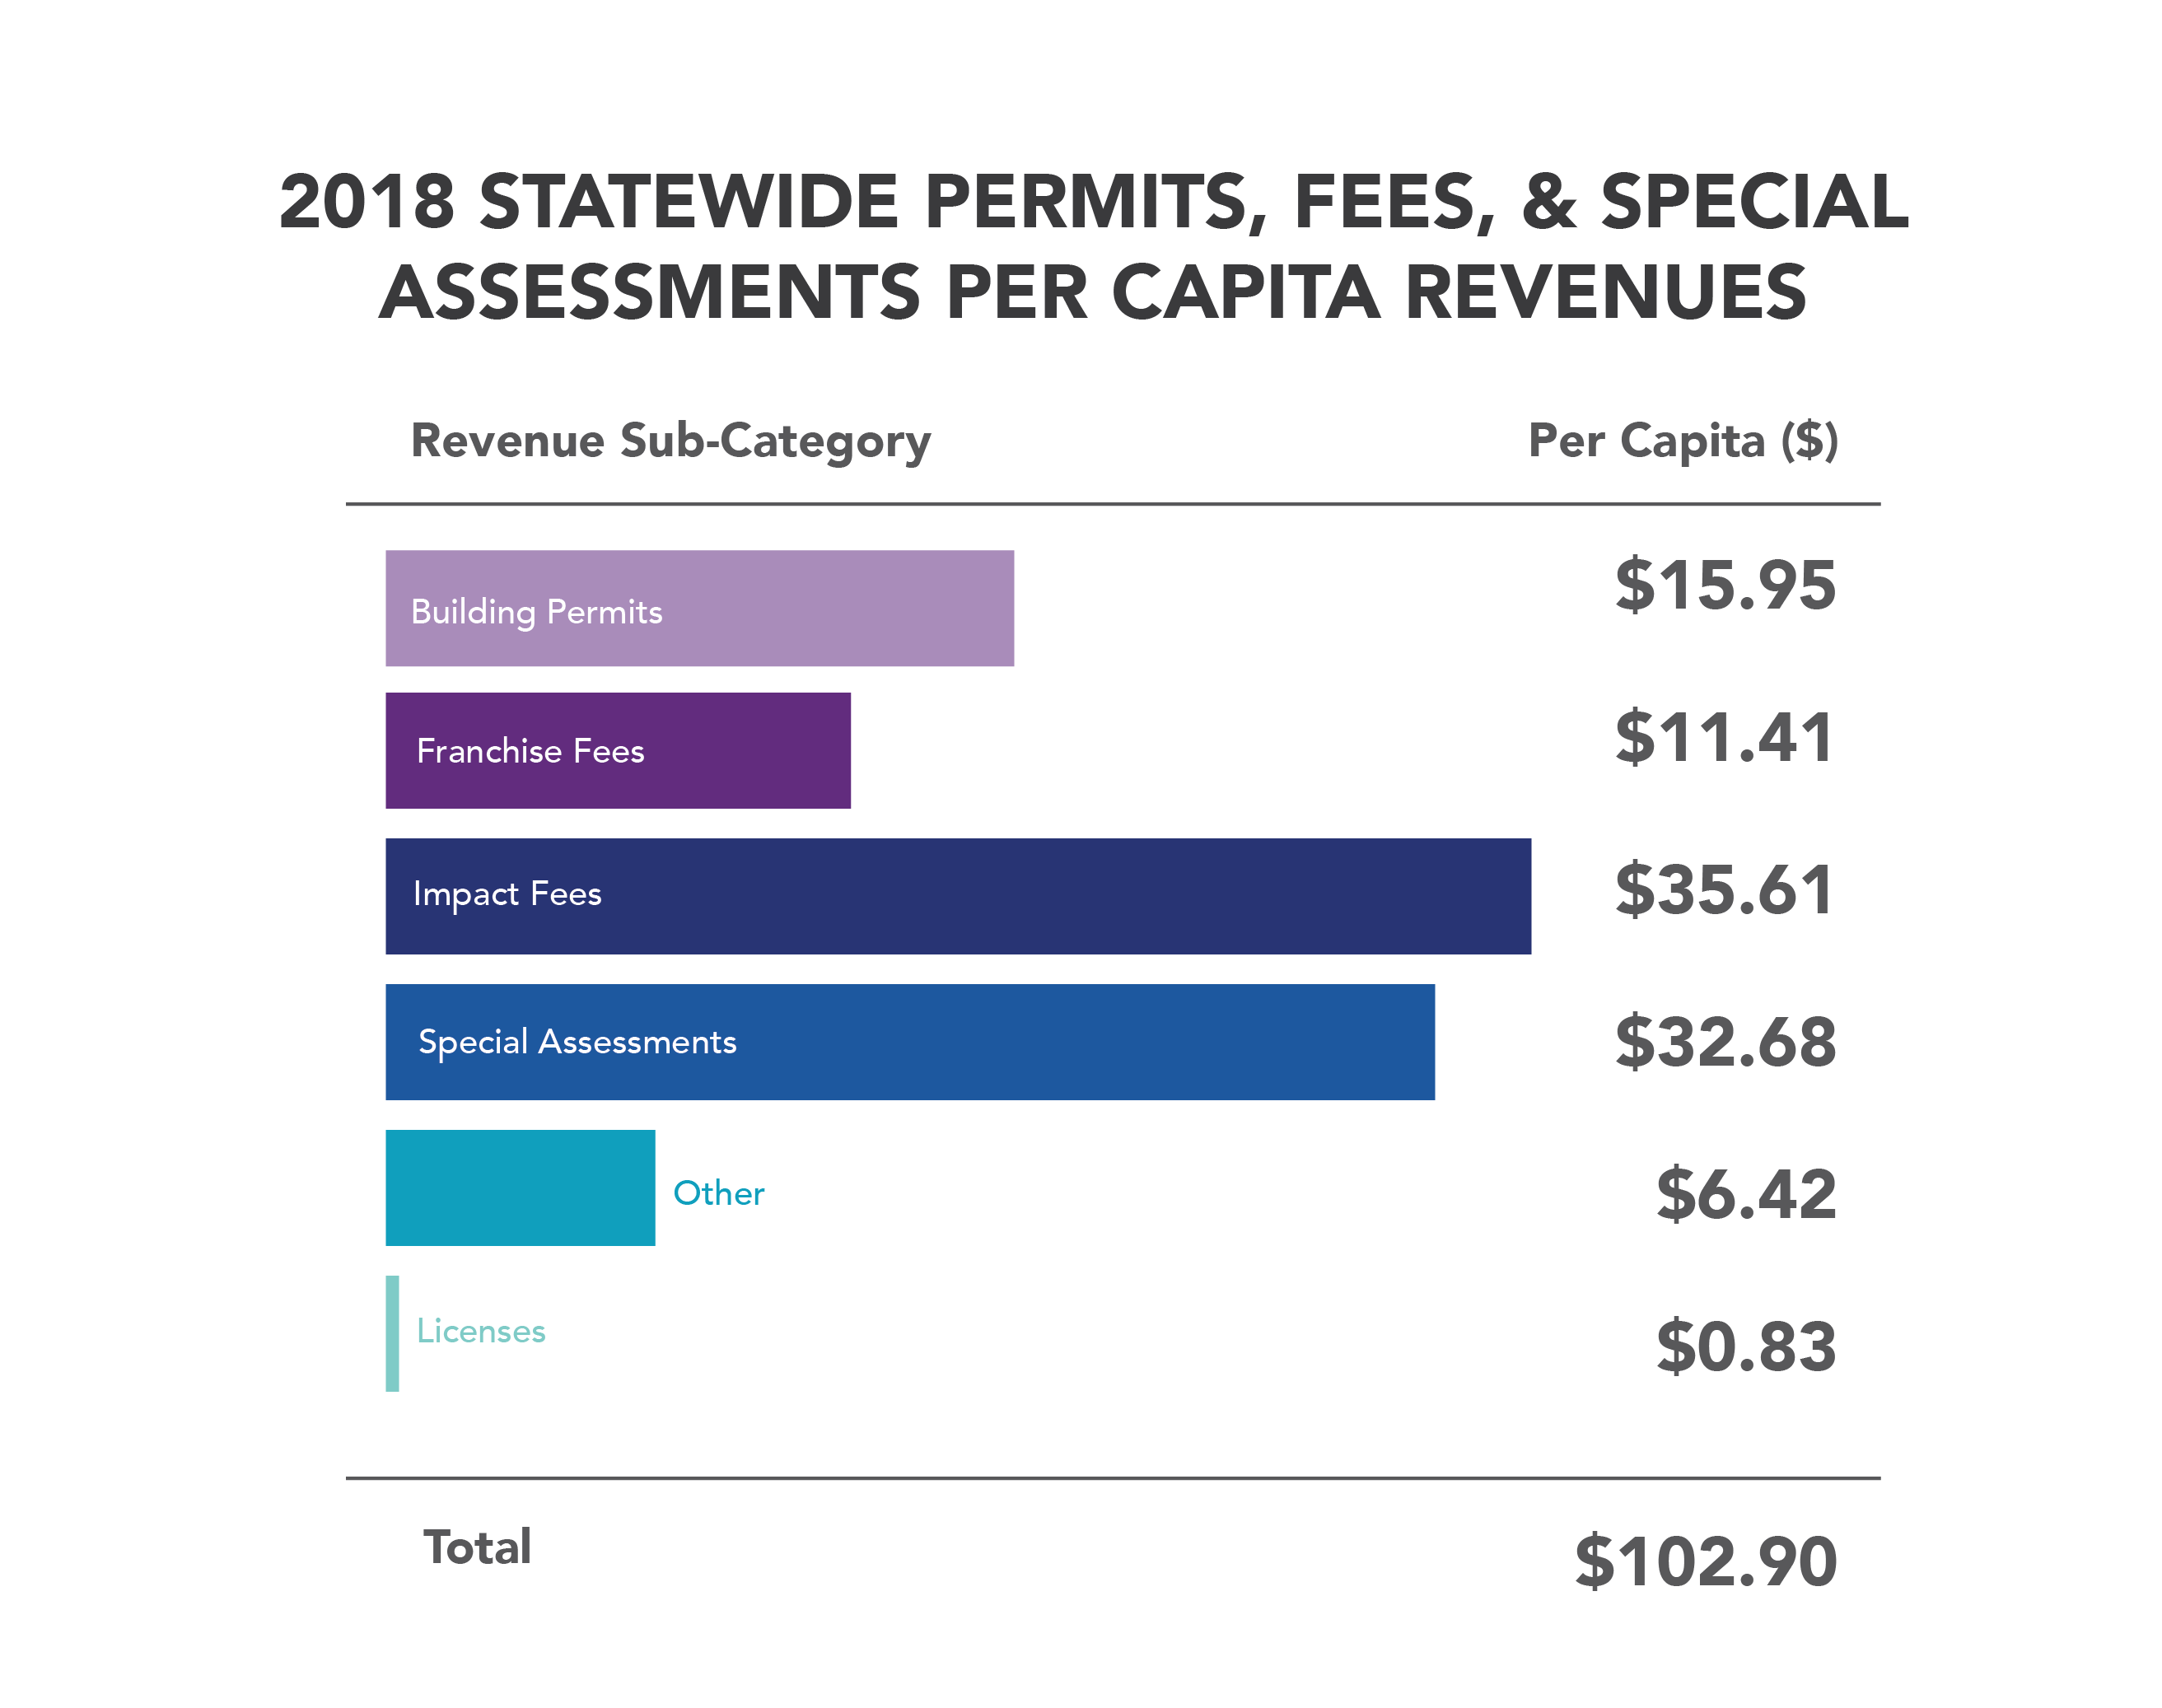 2018 statewide permits fees special assessments per capita revenue-01